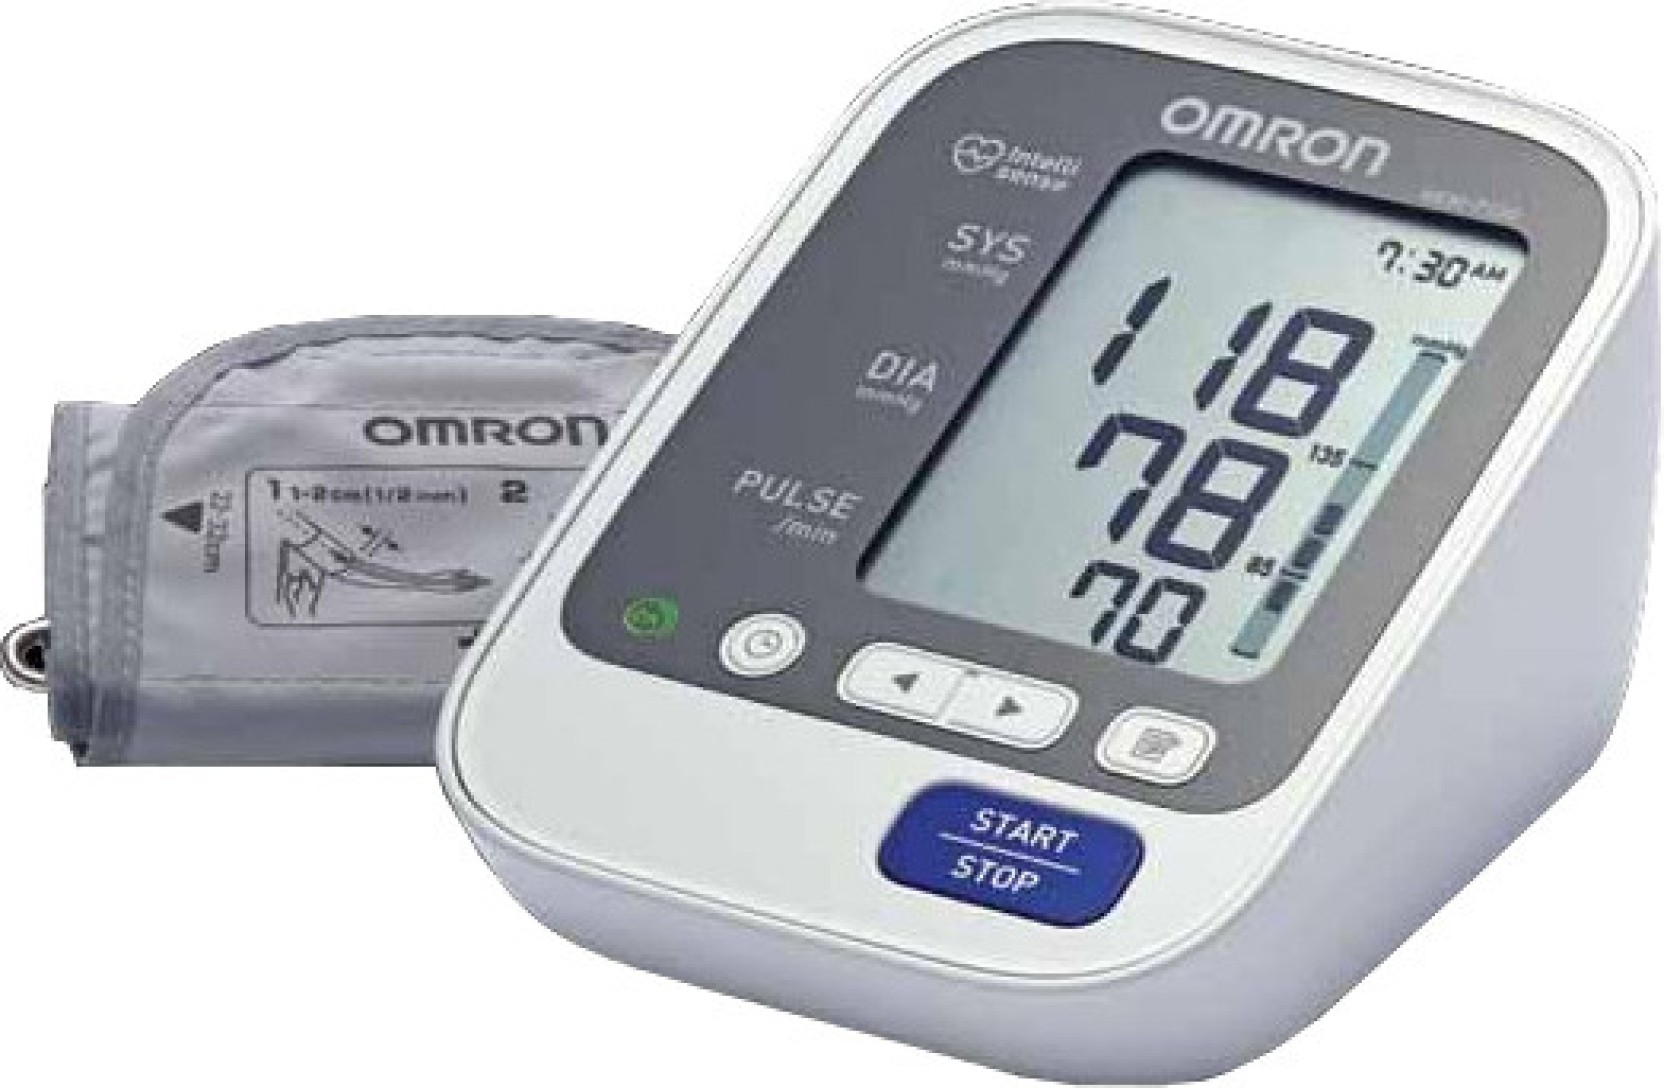 Omron Hem 7130 Bp Monitor Thermometer Digital Mc 245 Add To Cart